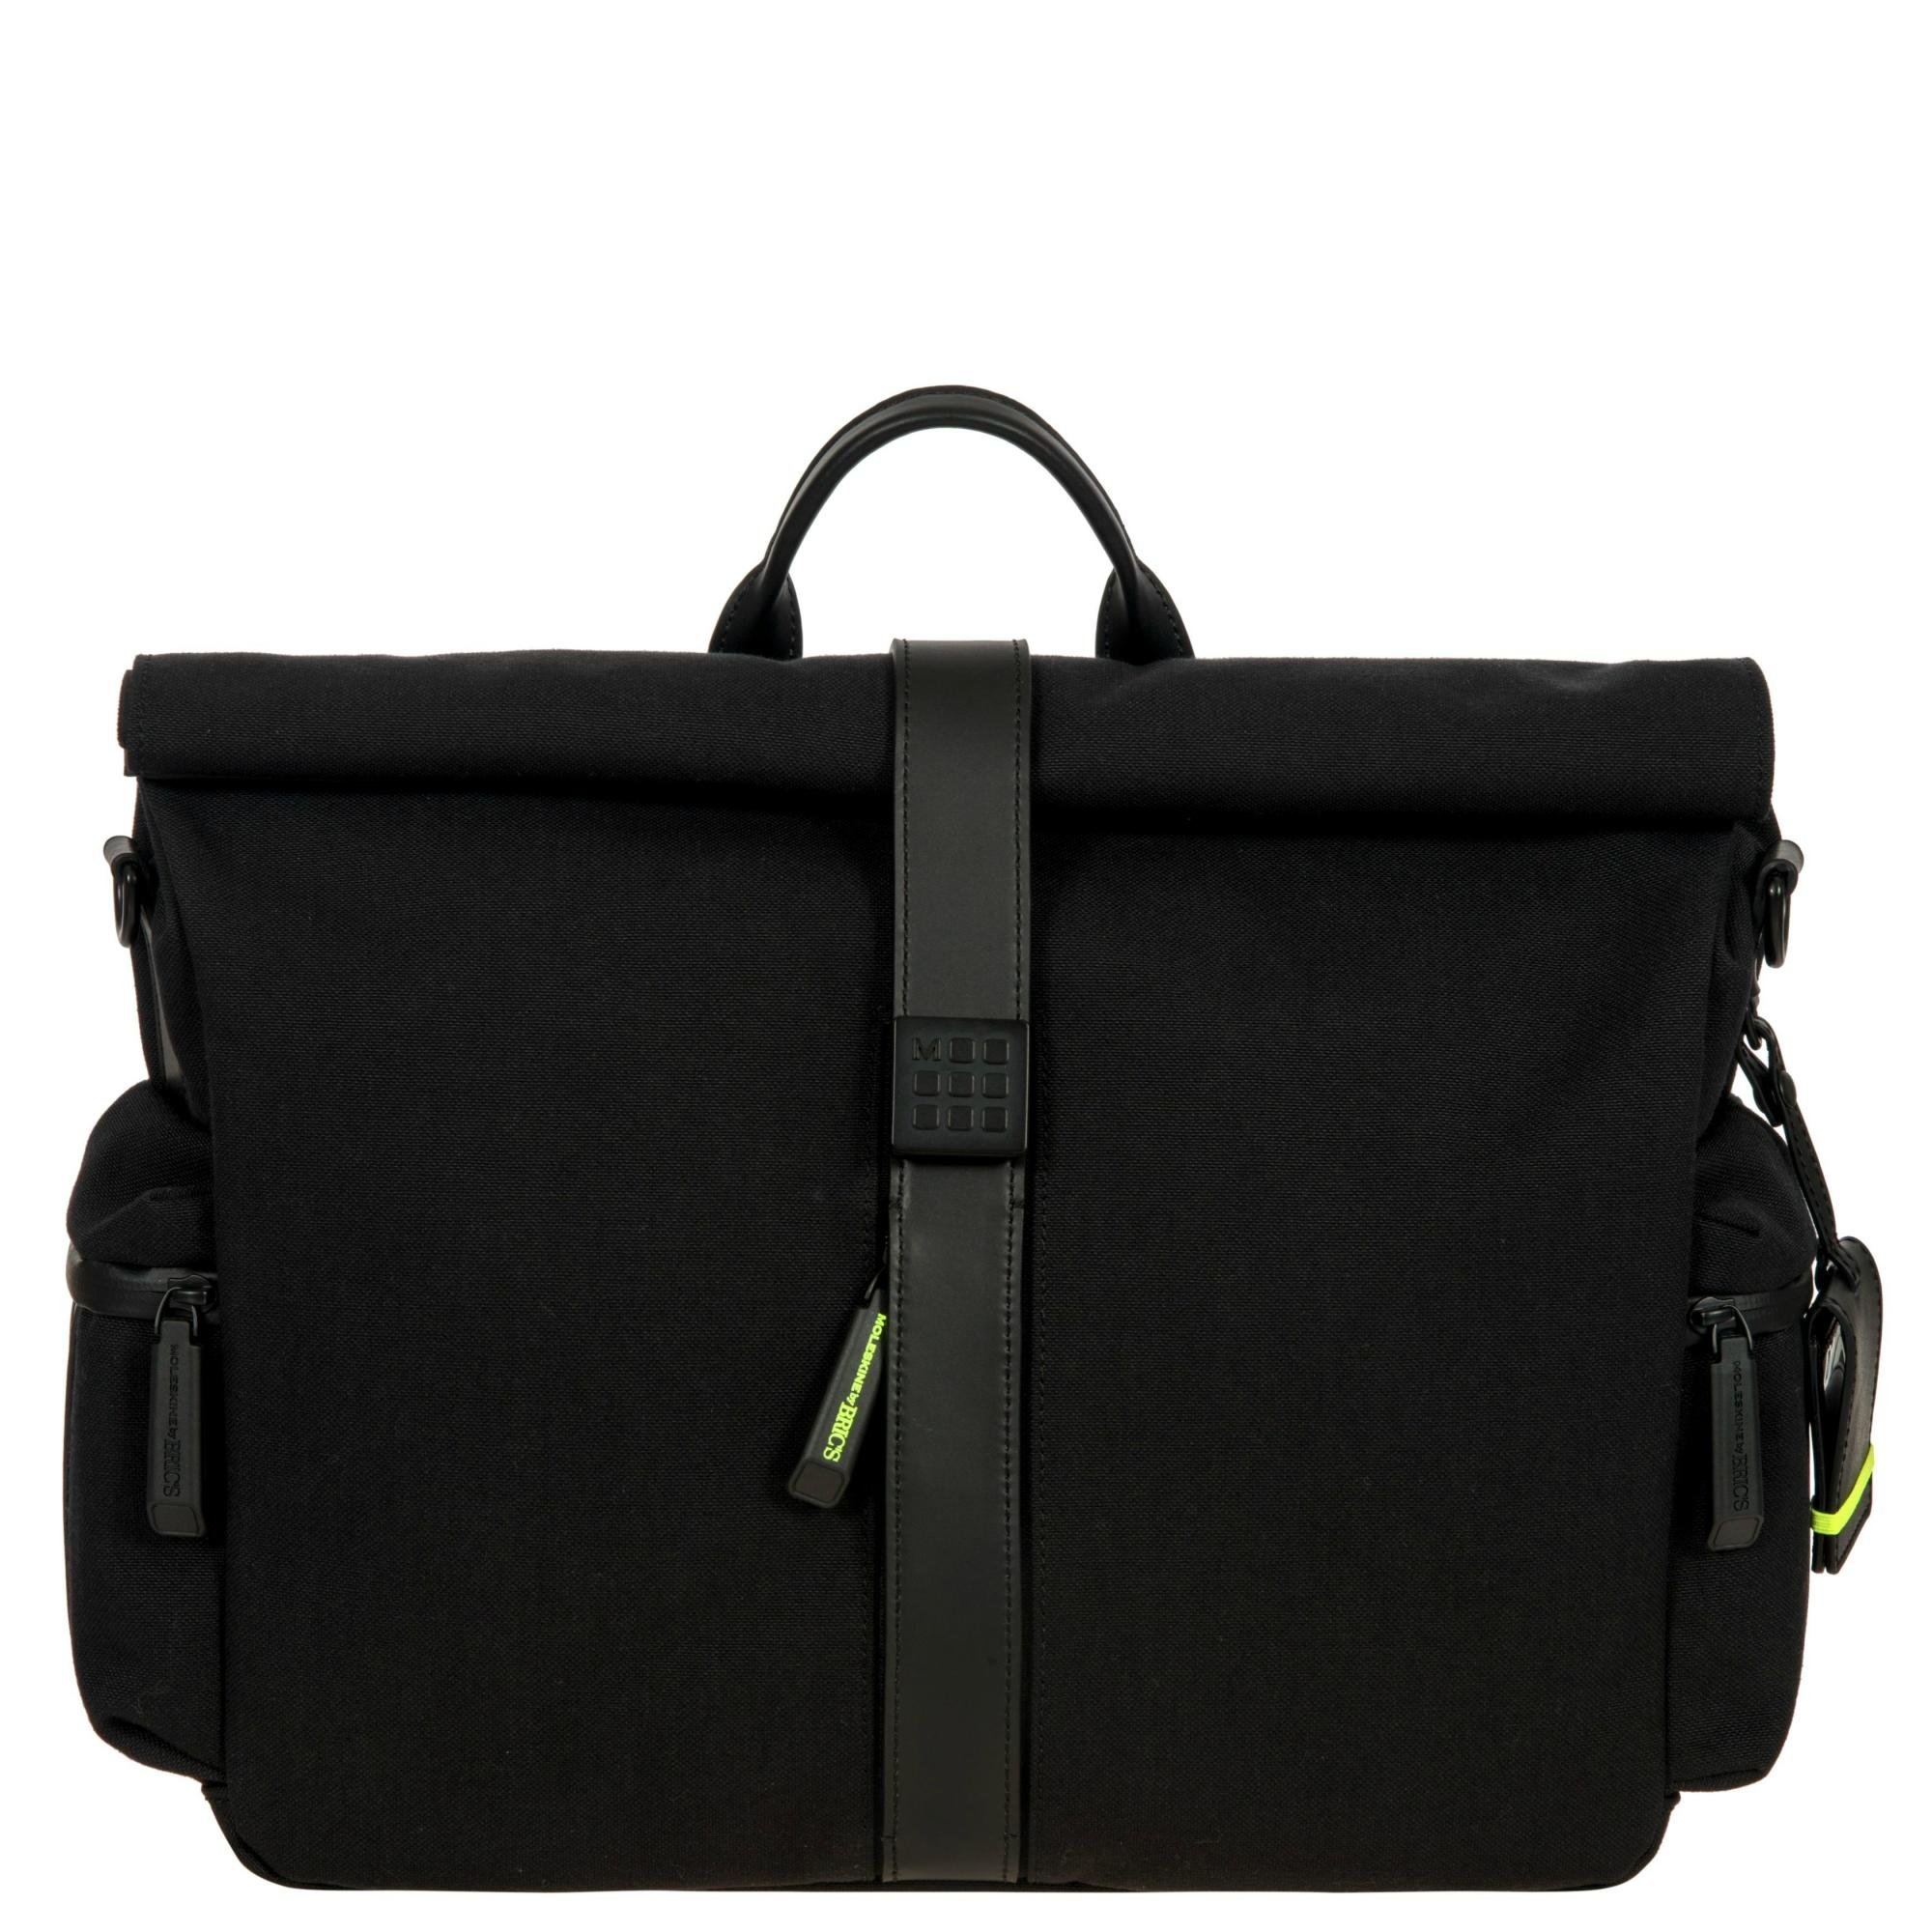 Bric's Men's Moleskine Roll-Top Tablet Business Laptop Messenger Bag, Black, One Size